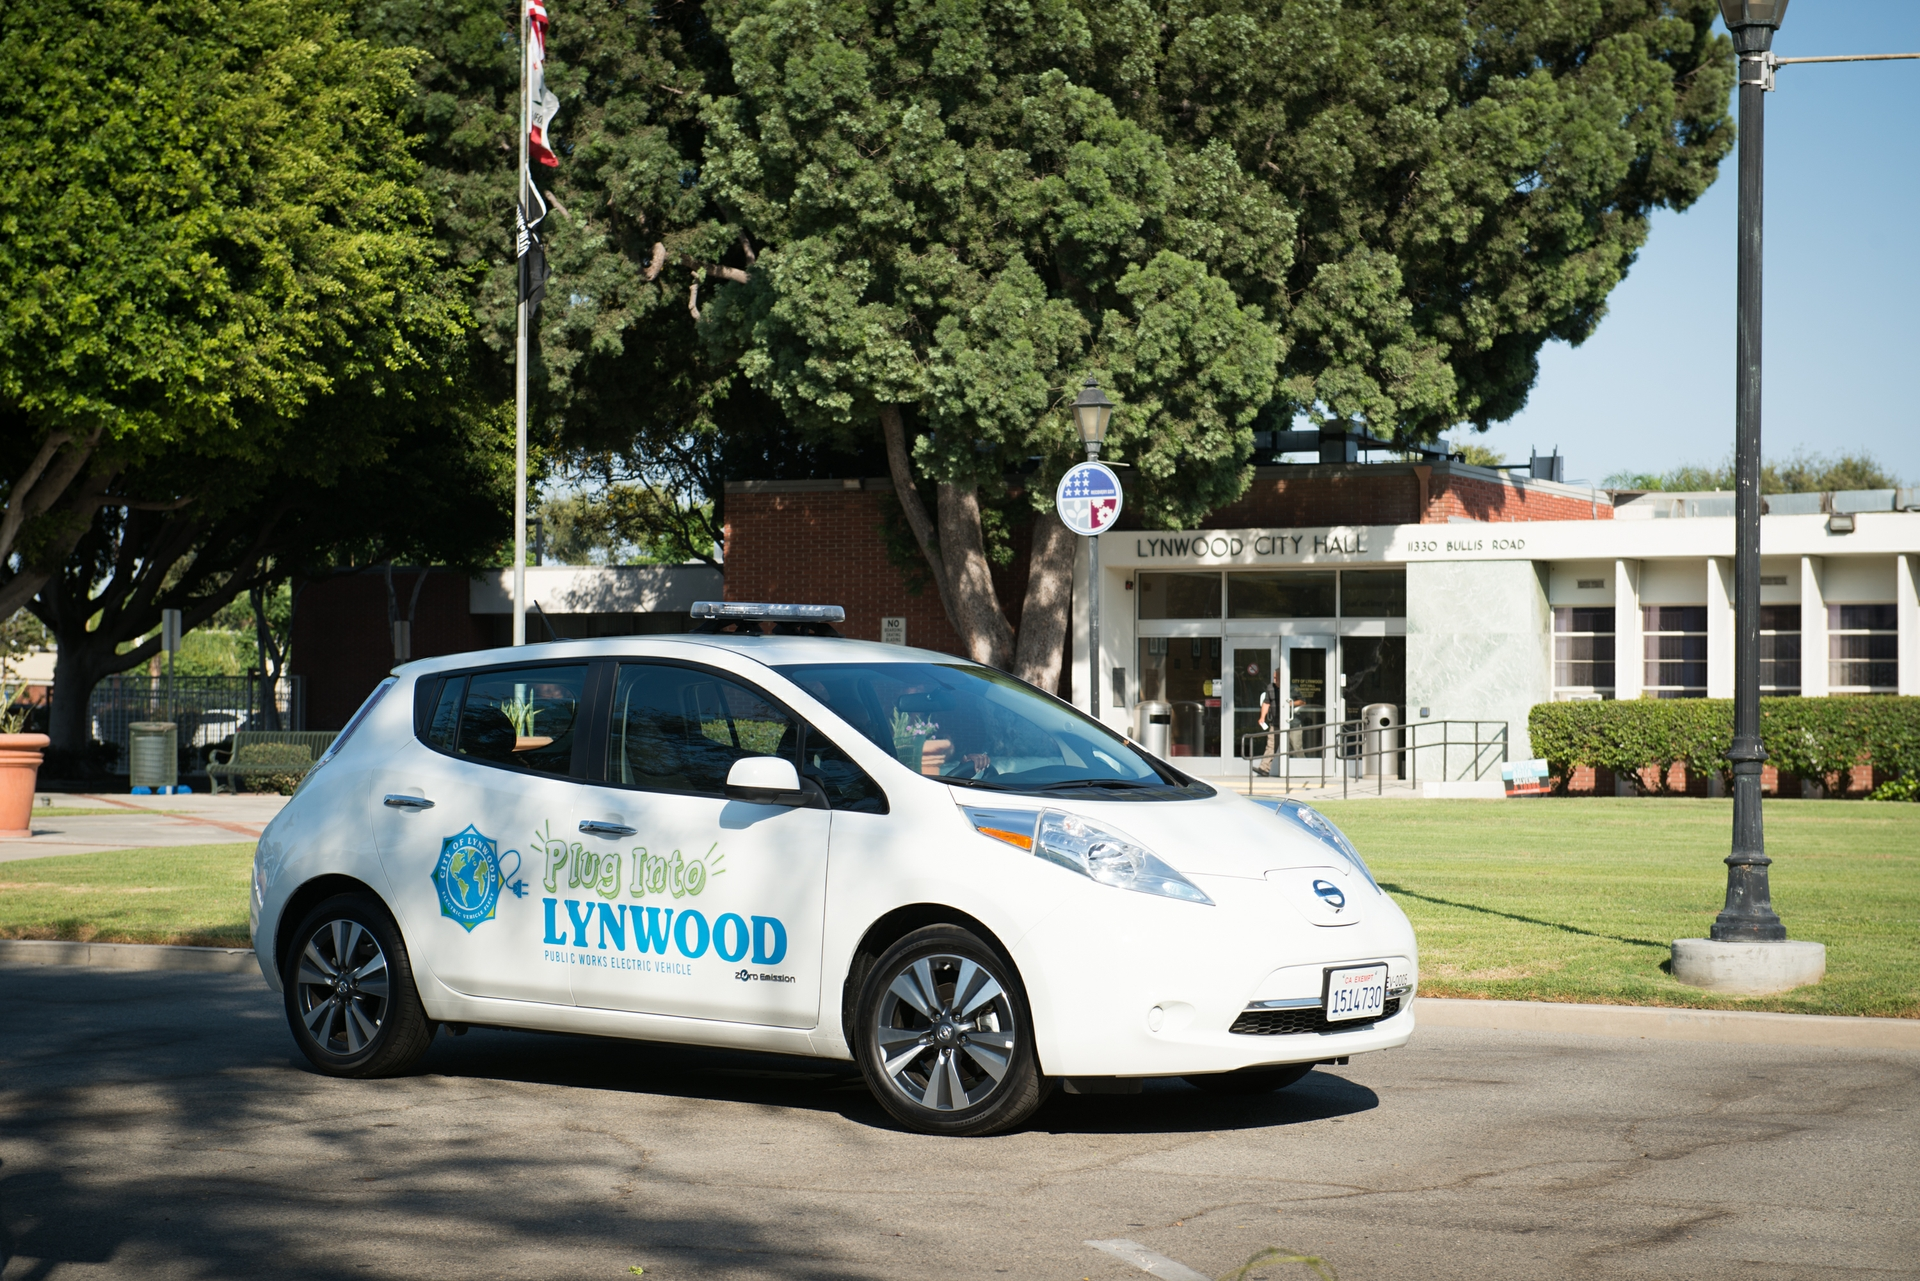 The city of Lynwood was the first Charge Ready pilot site, adding six chargers for the city's fleet of EVs and eight more at the civic center public parking lot.